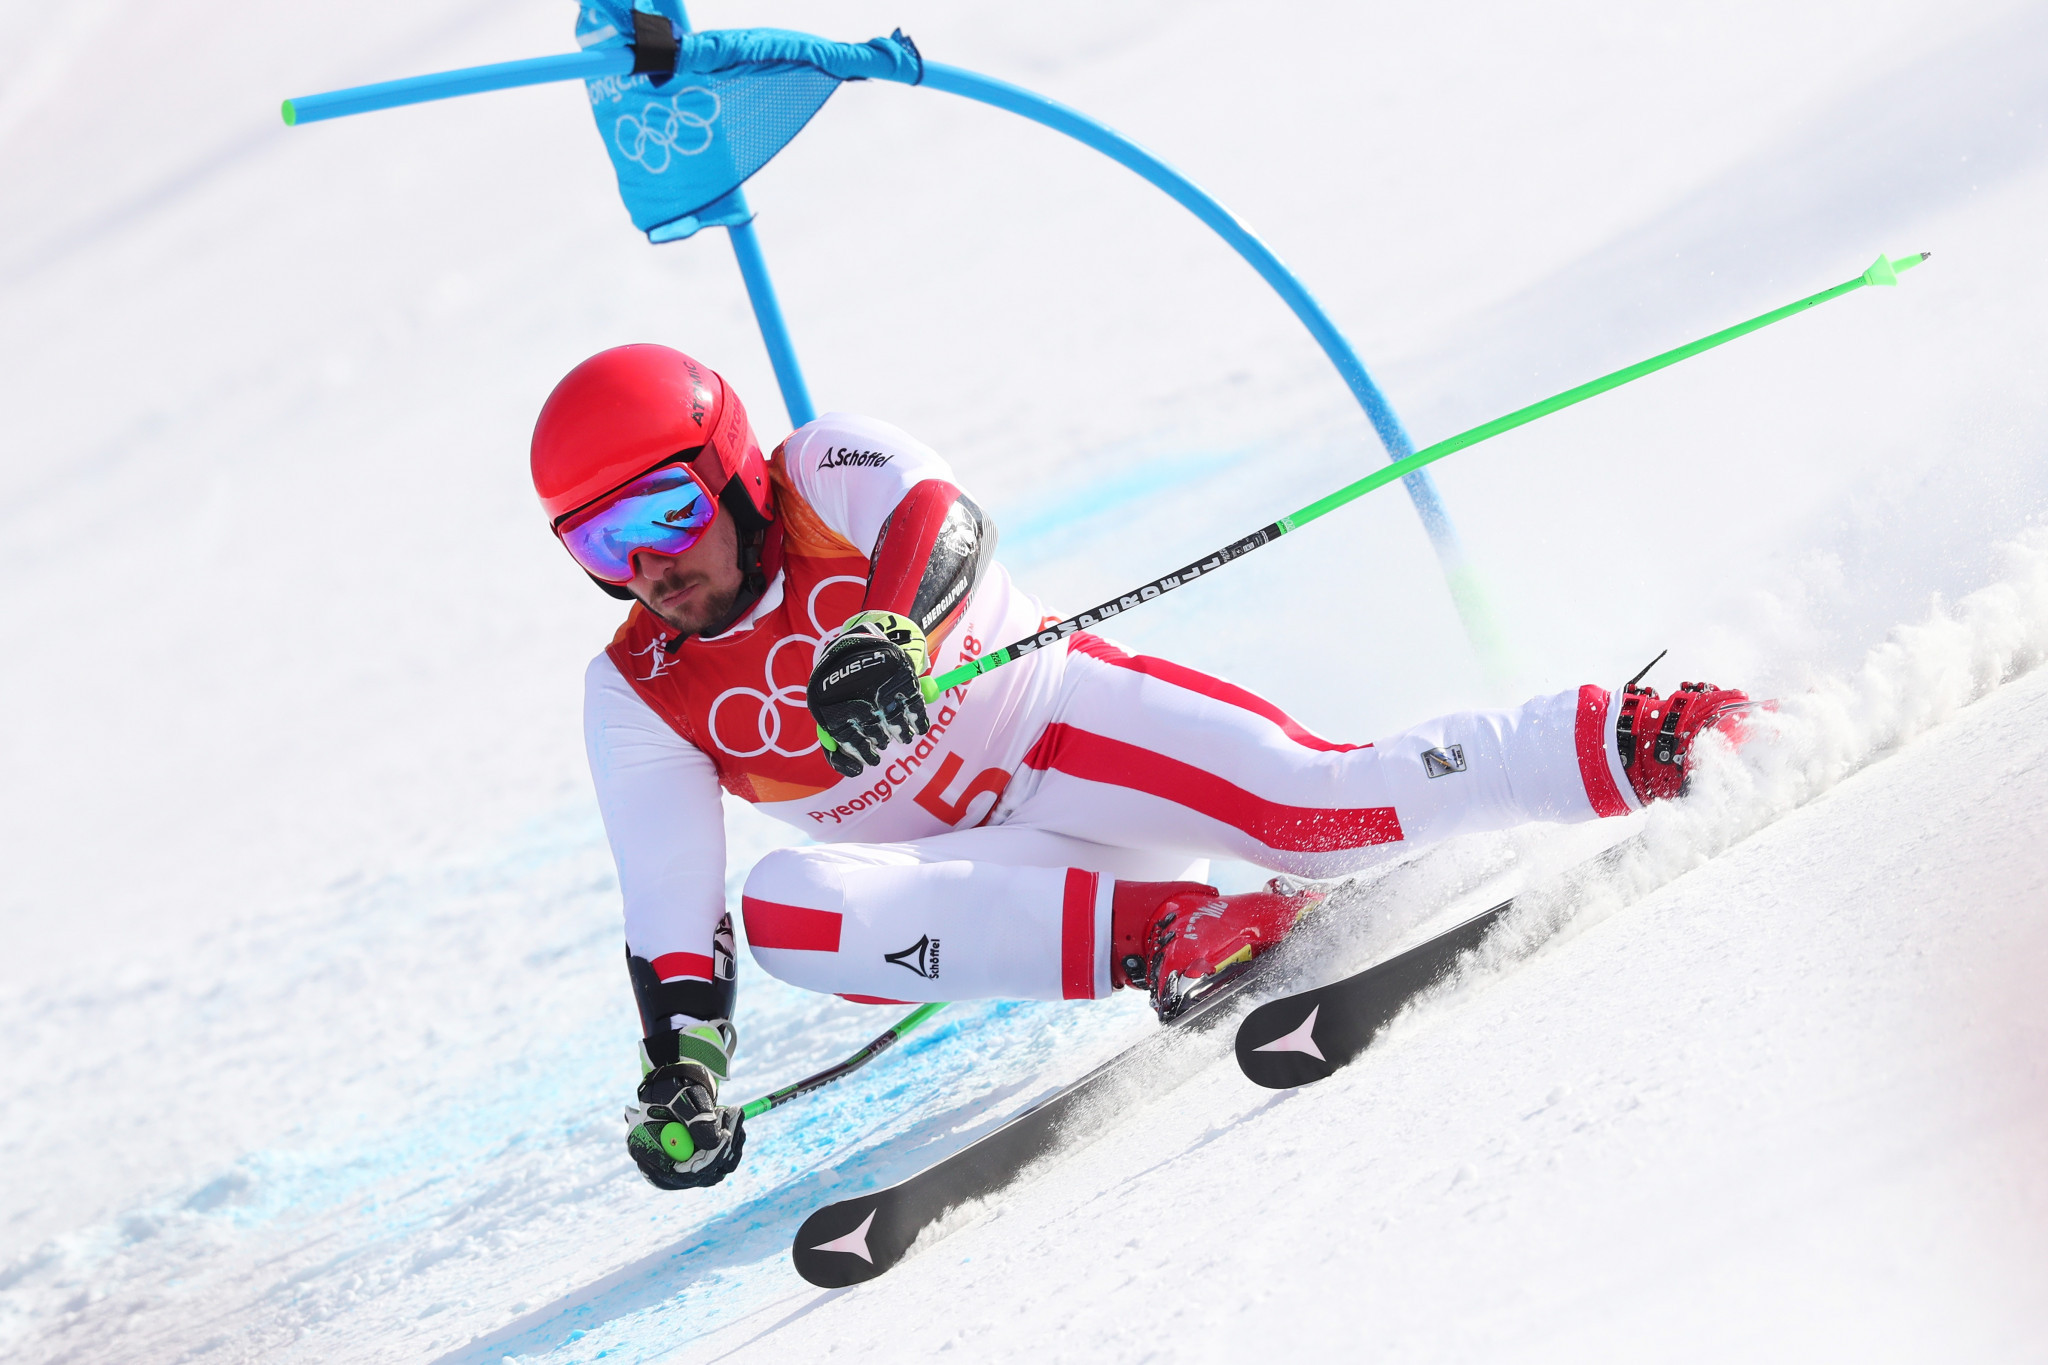 Hirscher clinches second gold medal with dominant giant slalom triumph at Pyeongchang 2018